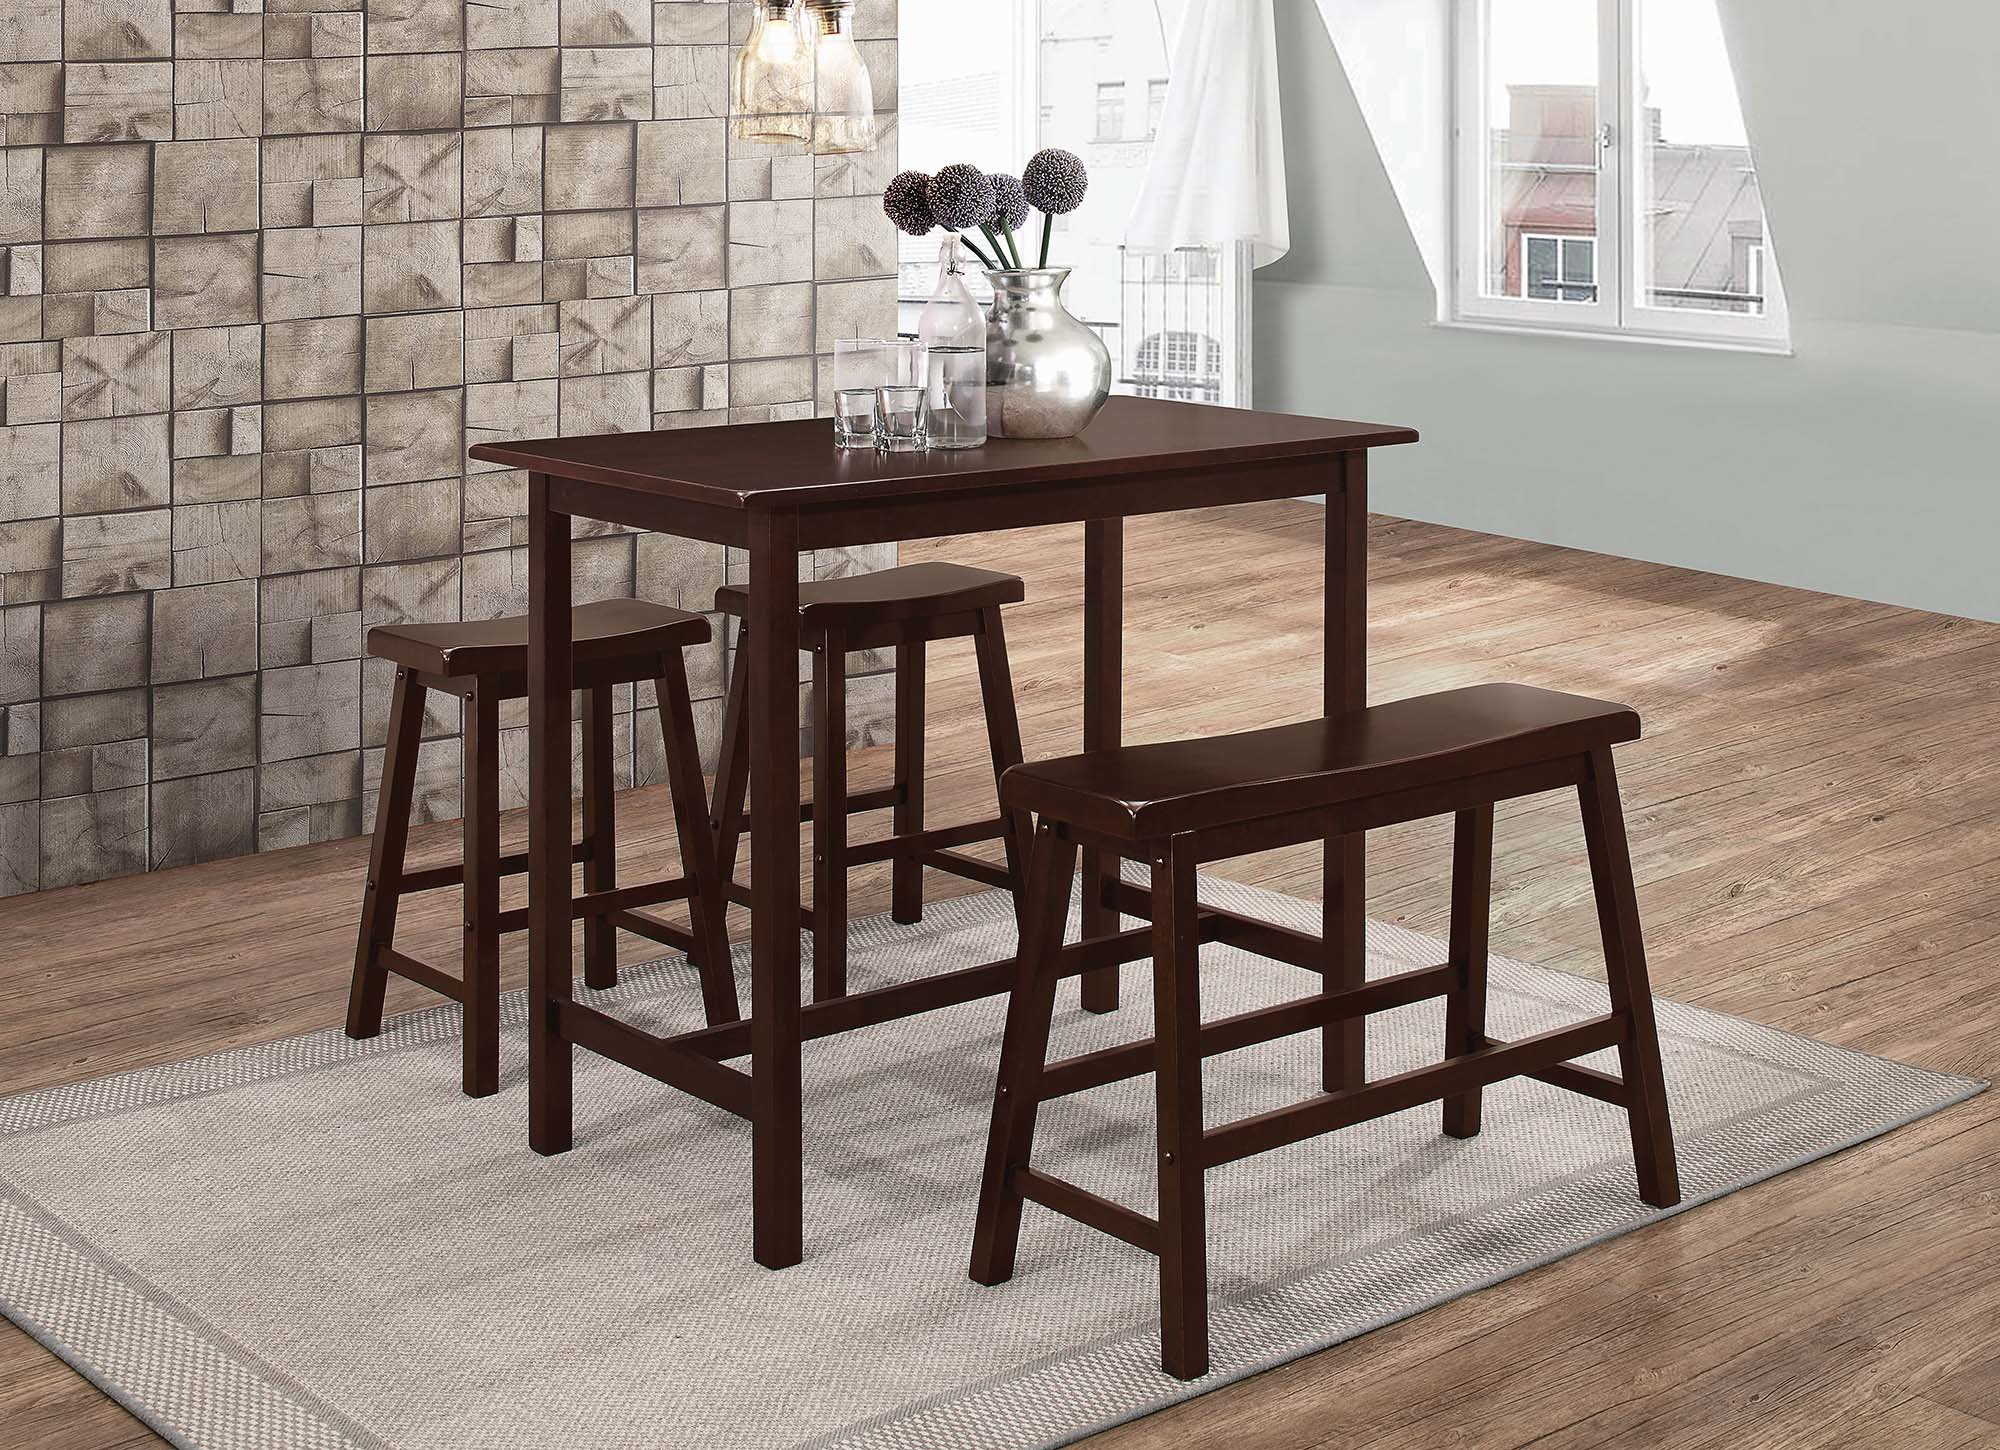 Kernville 3 Piece Counter Height Dining Sets Regarding Most Up To Date Tassone 4 Piece Dining Set (View 7 of 20)